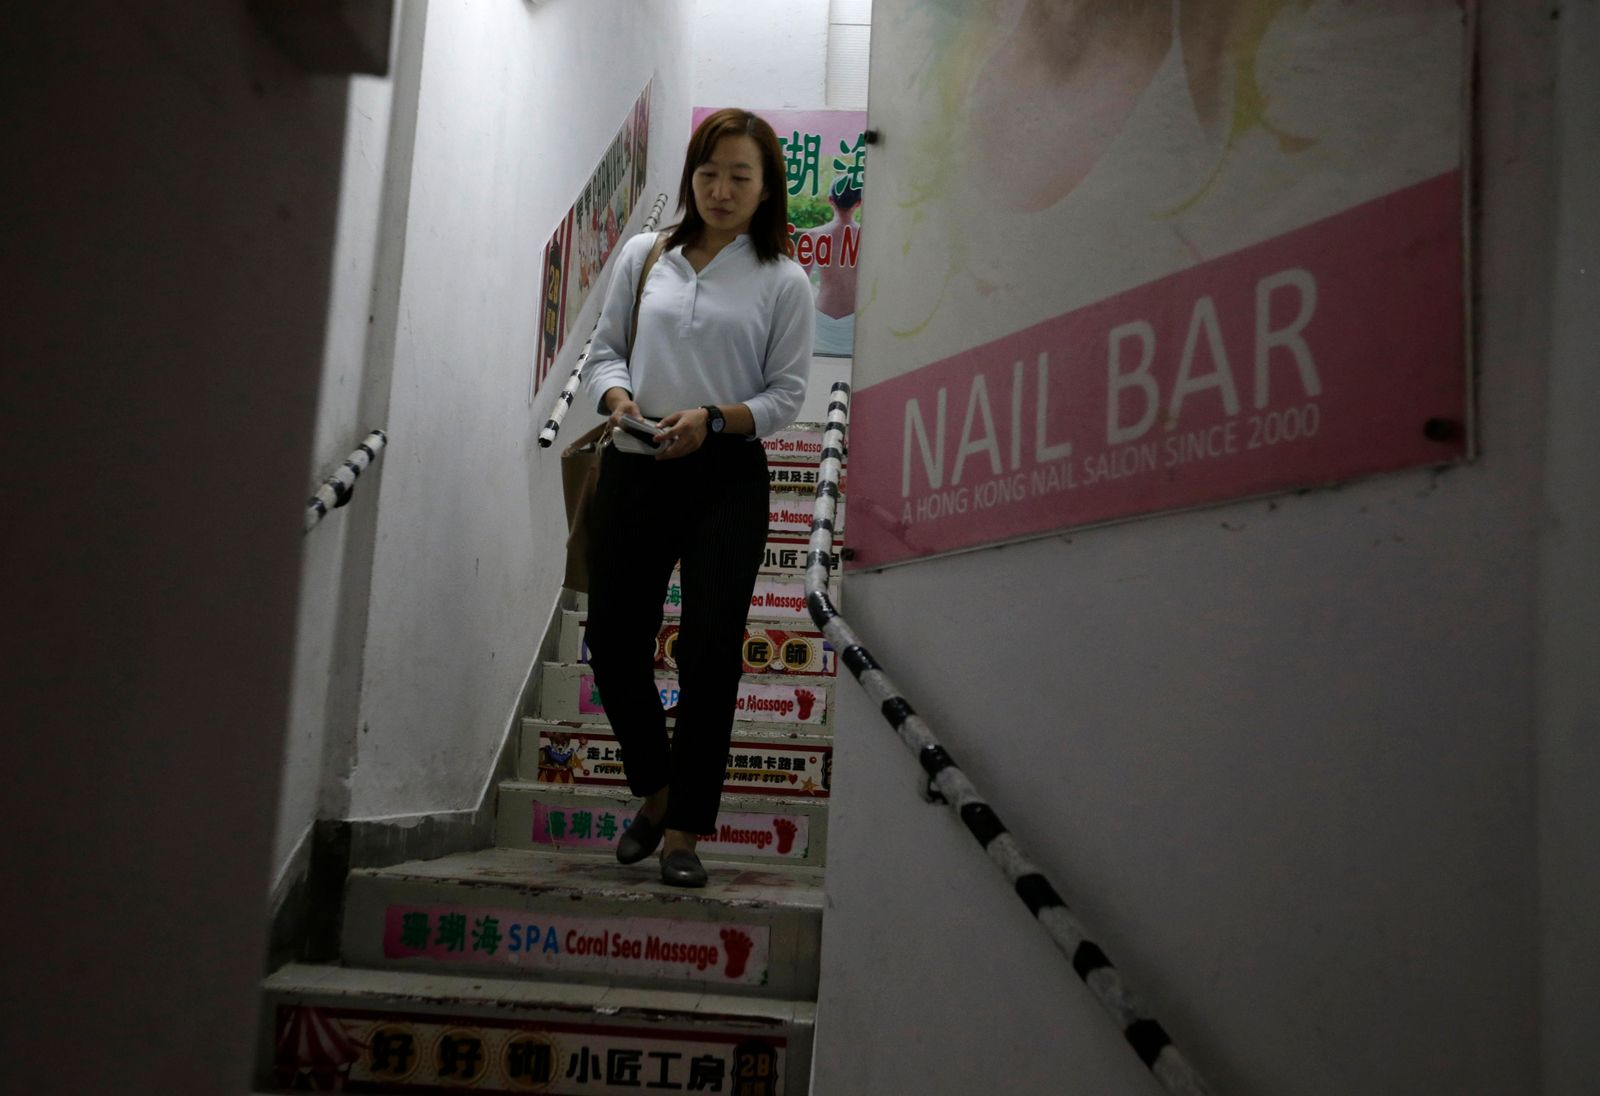 In this photo taken Thursday, Nov. 7, 2019, district council candidate Cathy Yau walks down the stairs of a building during a door-to-door campaign at Causeway Bay in Hong Kong.{ } (AP Photo/Dita Alangkara)